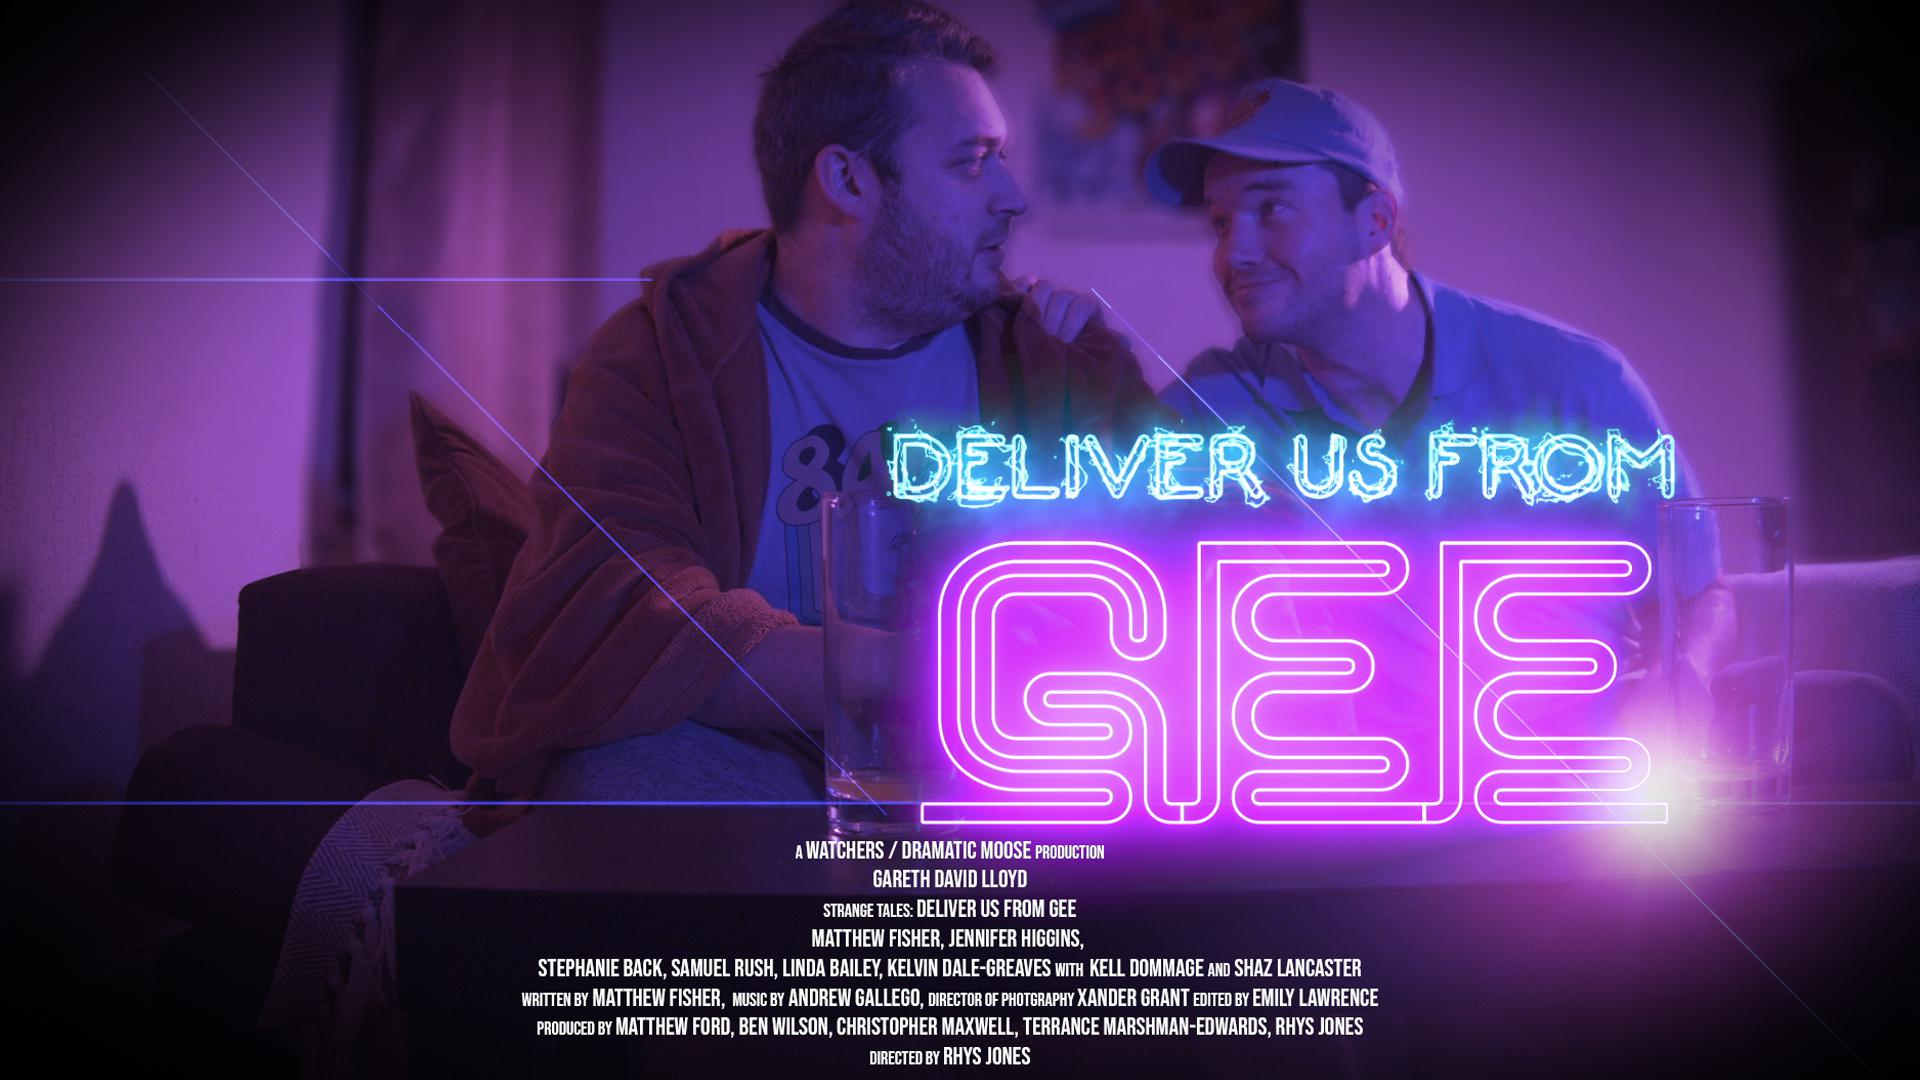 Deliver Us From GEE